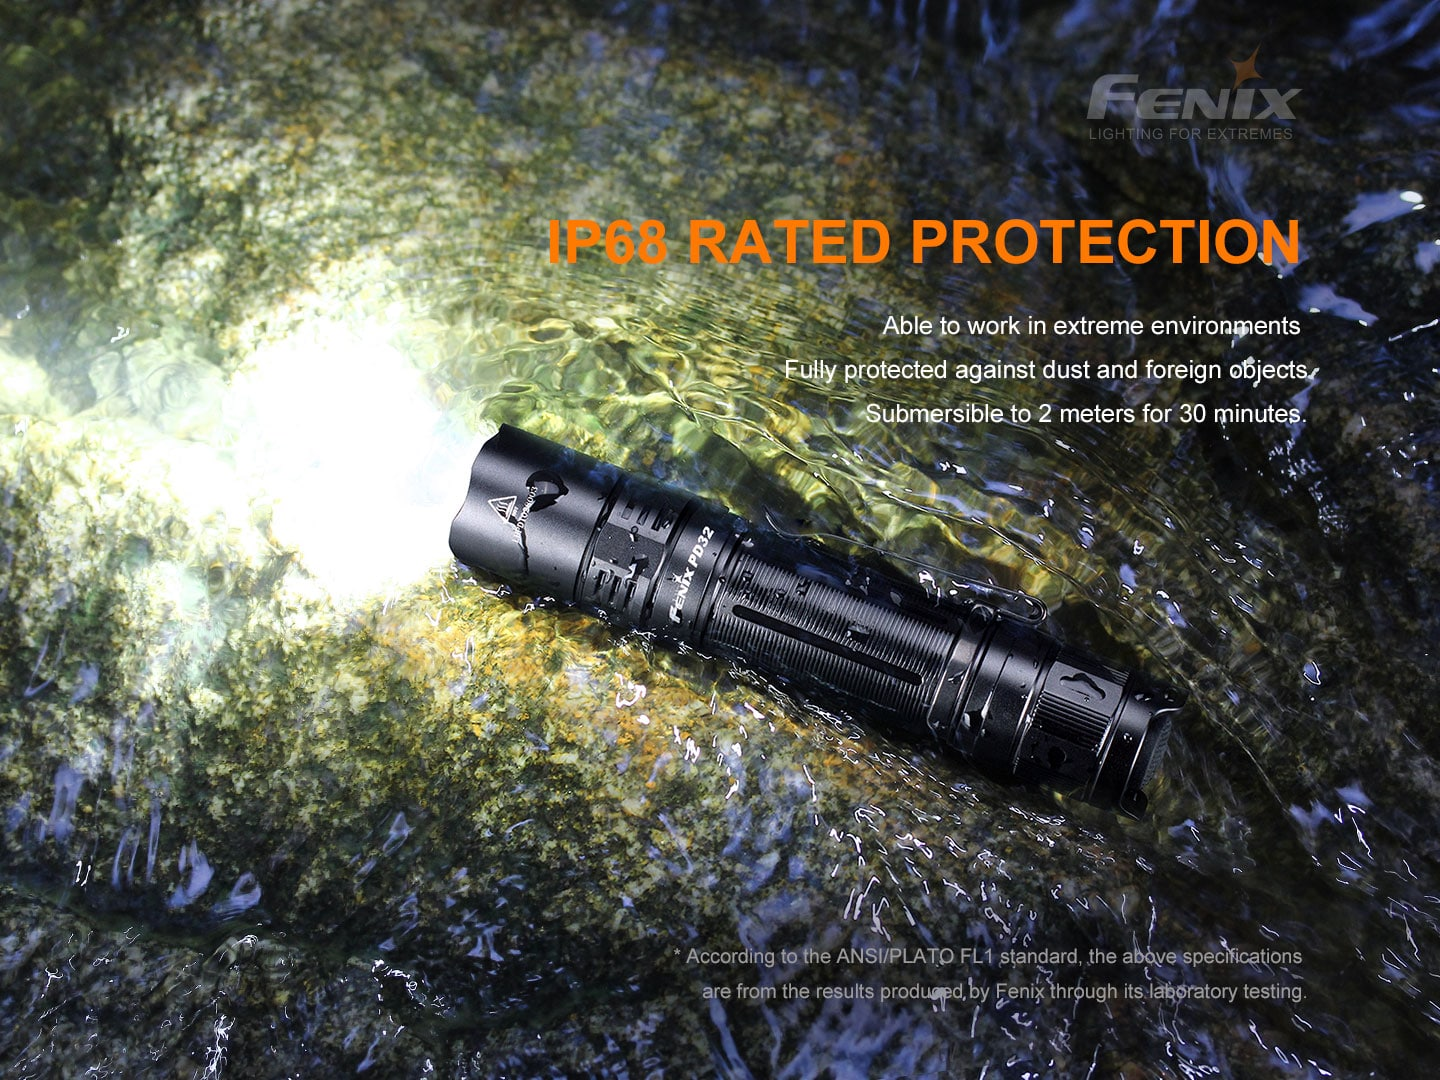 Fenix PD32 V2.0 LED Torch, Powerful compact EDC Light, Long Distance Compact High performance Flashlight, Perfect for Outdoor LED Flashlight